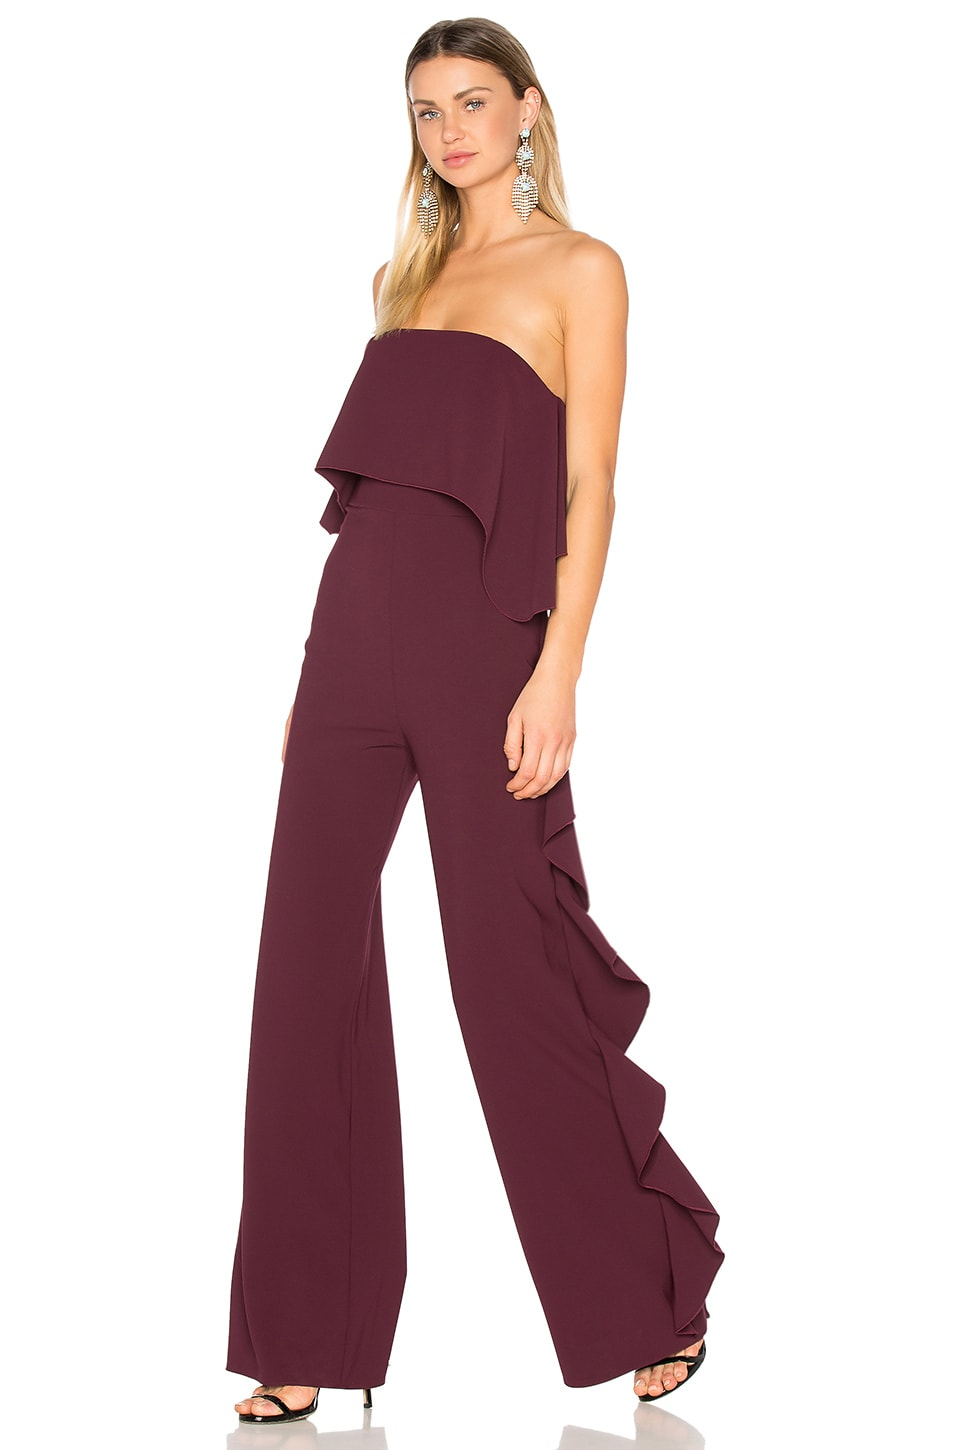 Alexis Kendall Jumpsuit in Plum